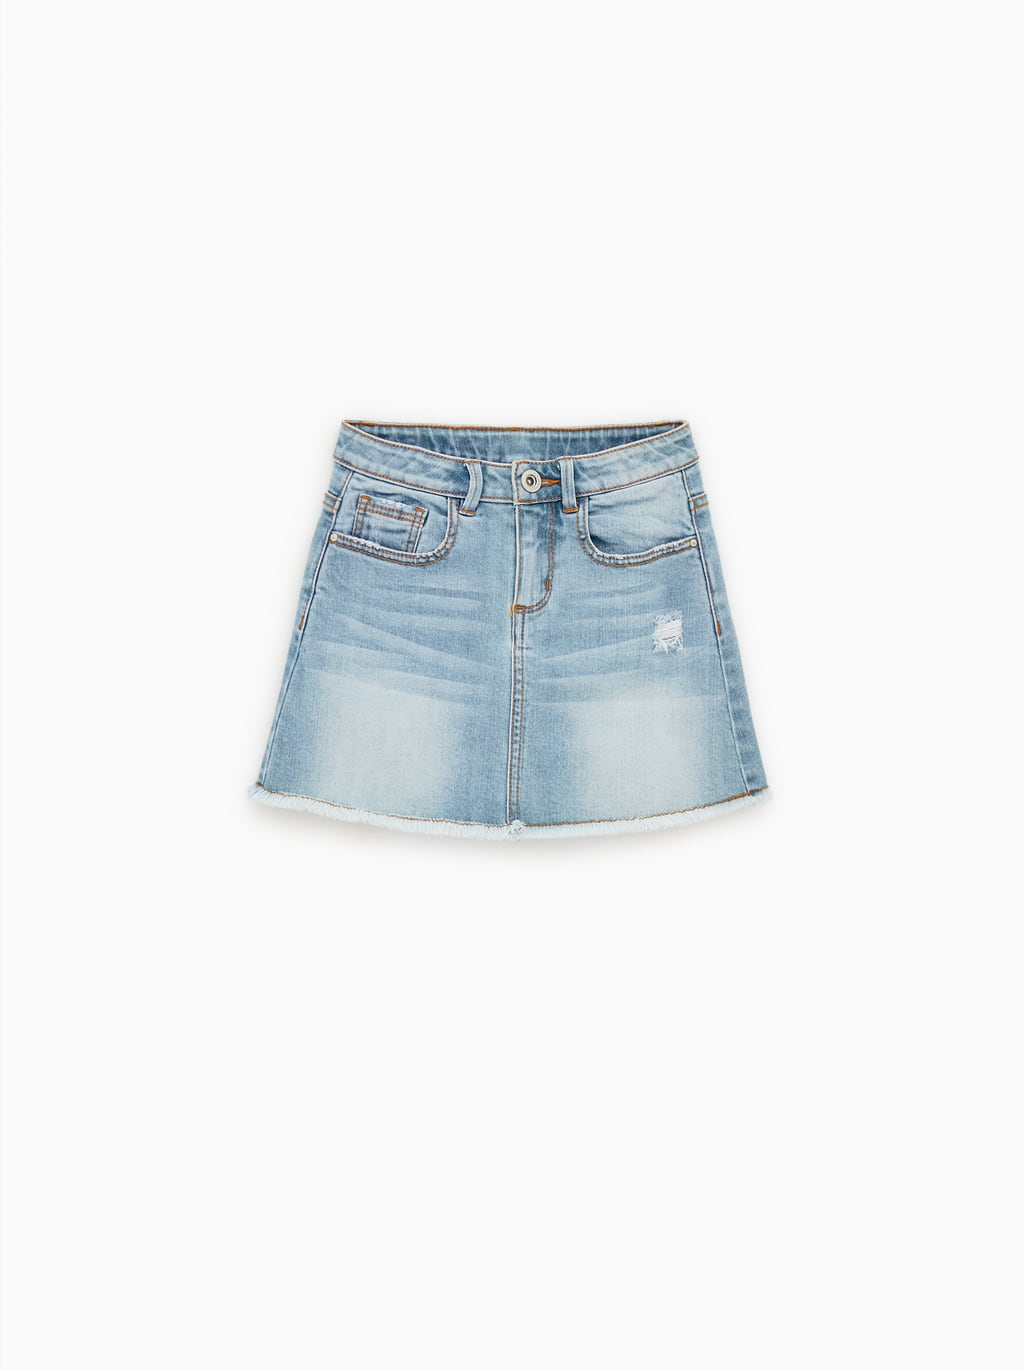 a236203d5 BASIC DENIM SKIRT-SKIRTS AND SHORTS-GIRL | 6 - 14 years-KIDS-NEW ...